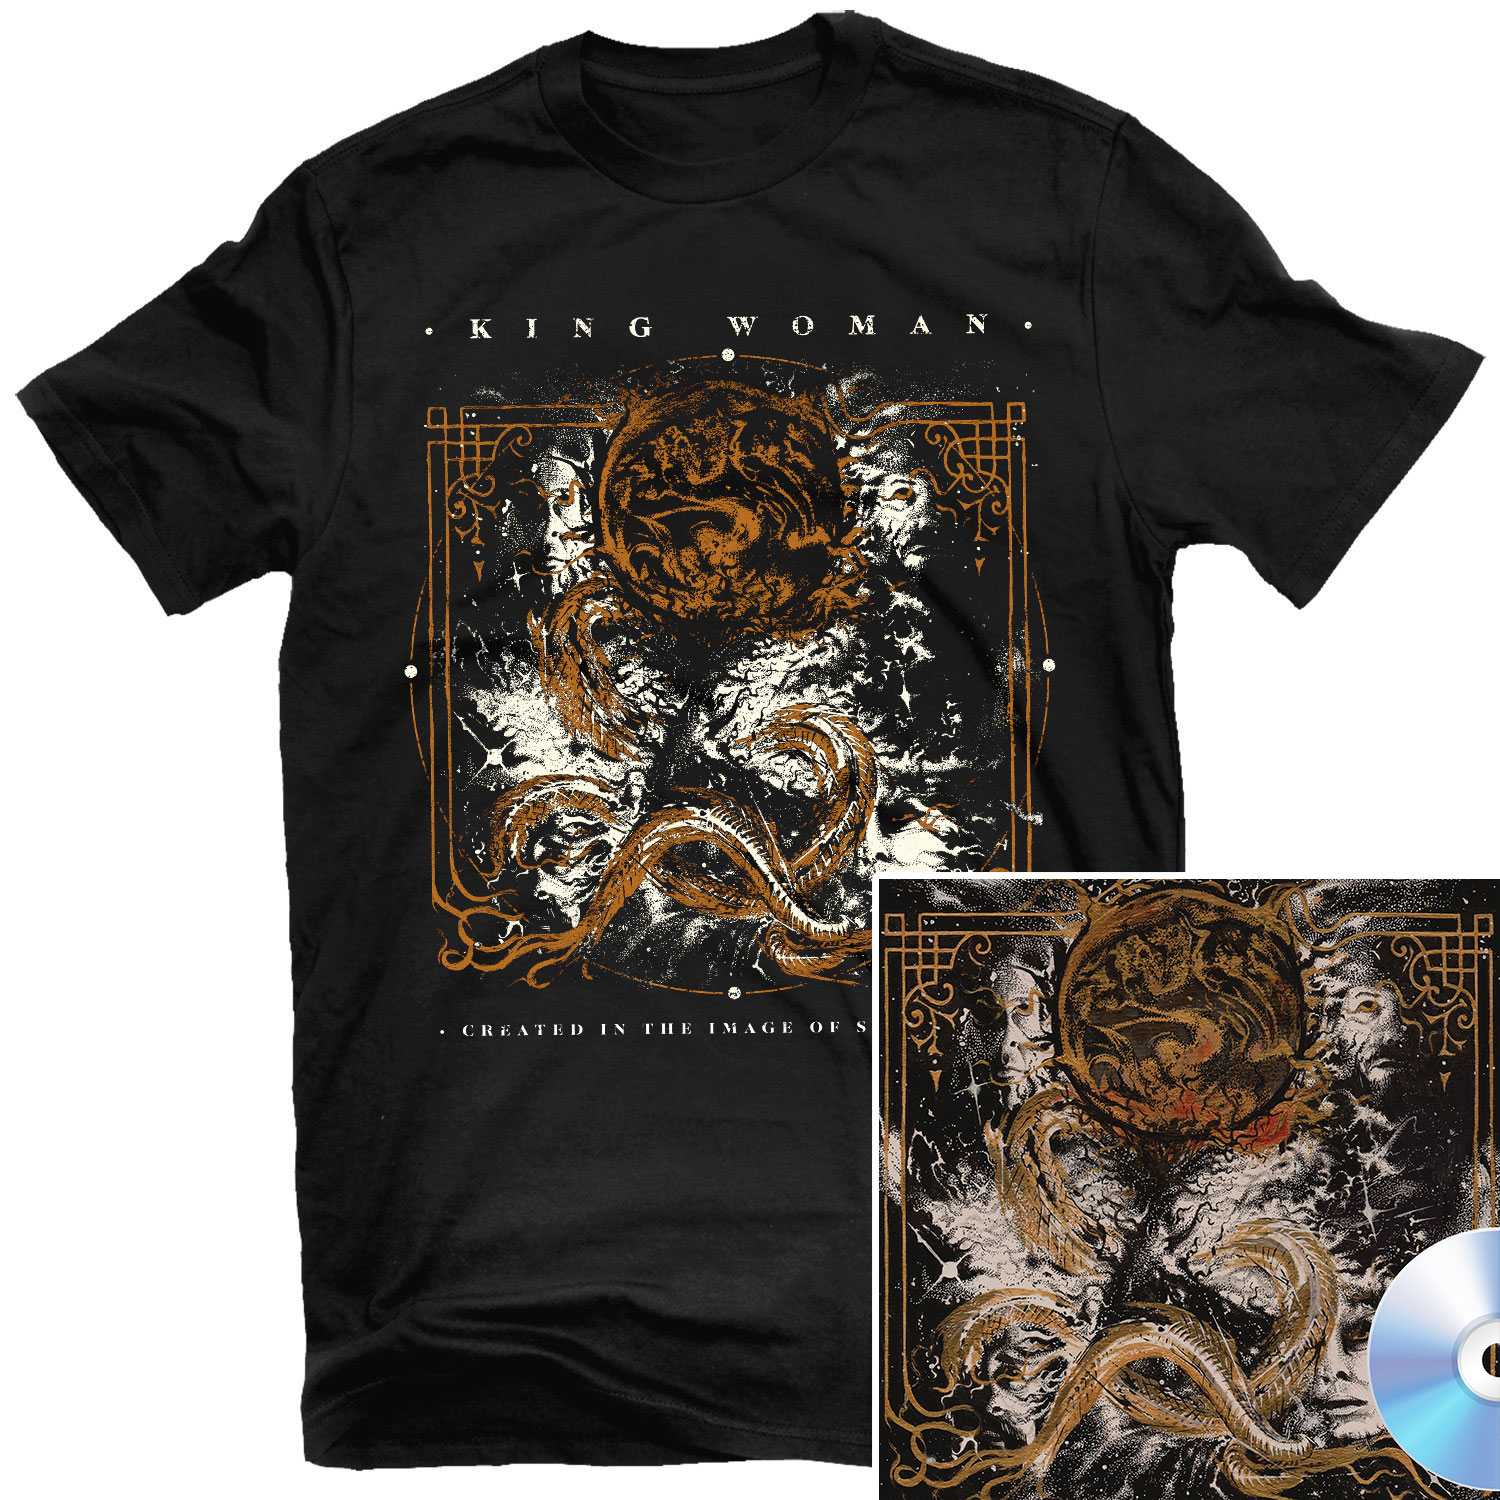 Created in the Image of Suffering T Shirt + CD Bundle